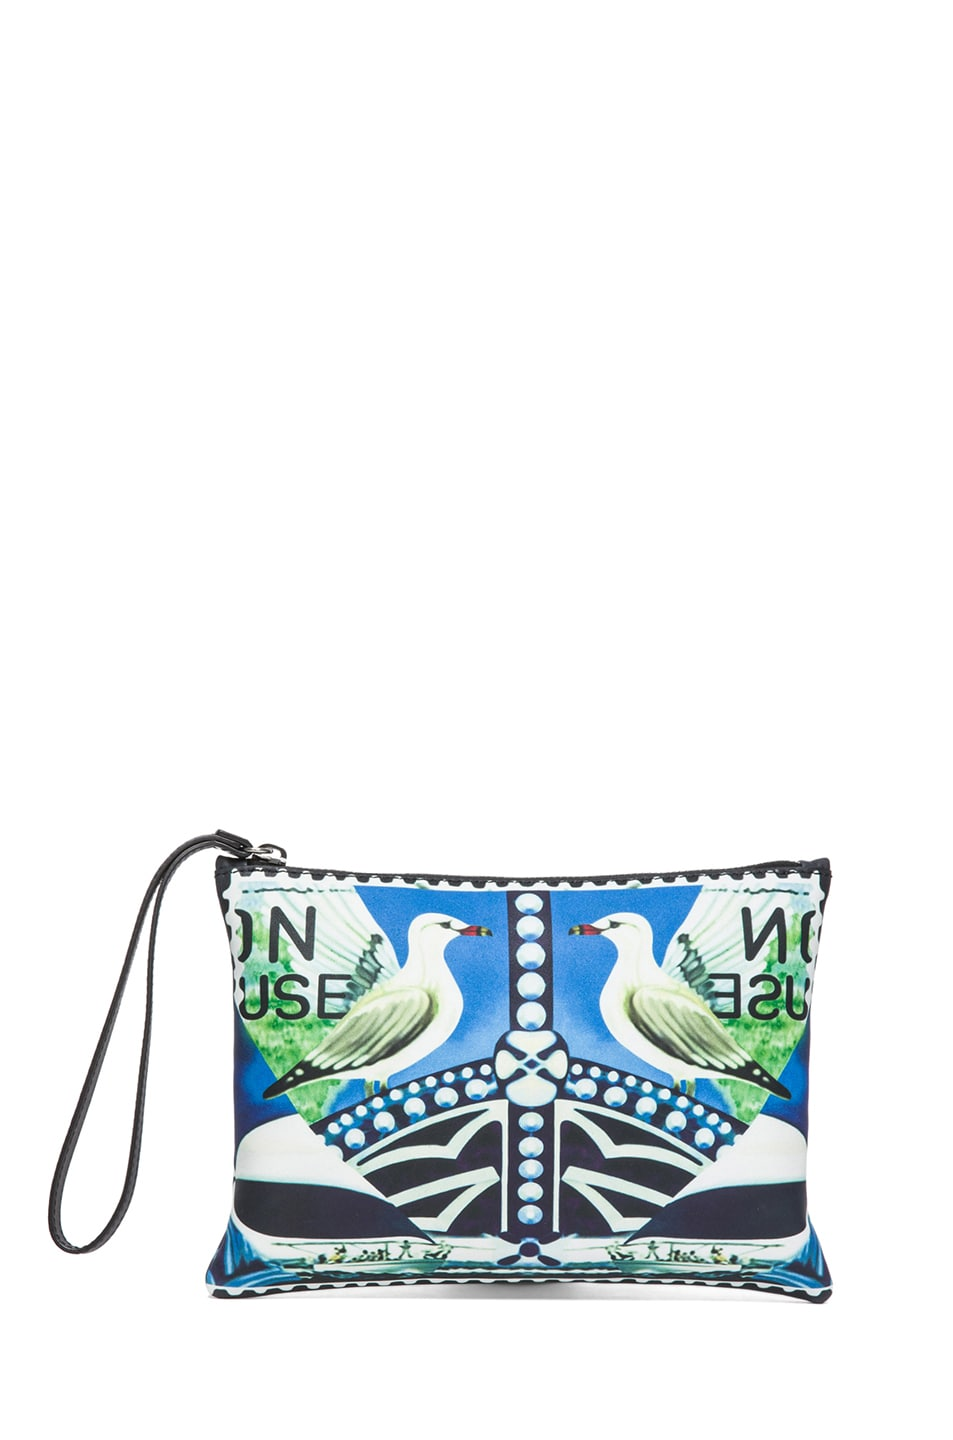 Image 1 of Mary Katrantzou Clutch in Starsailor